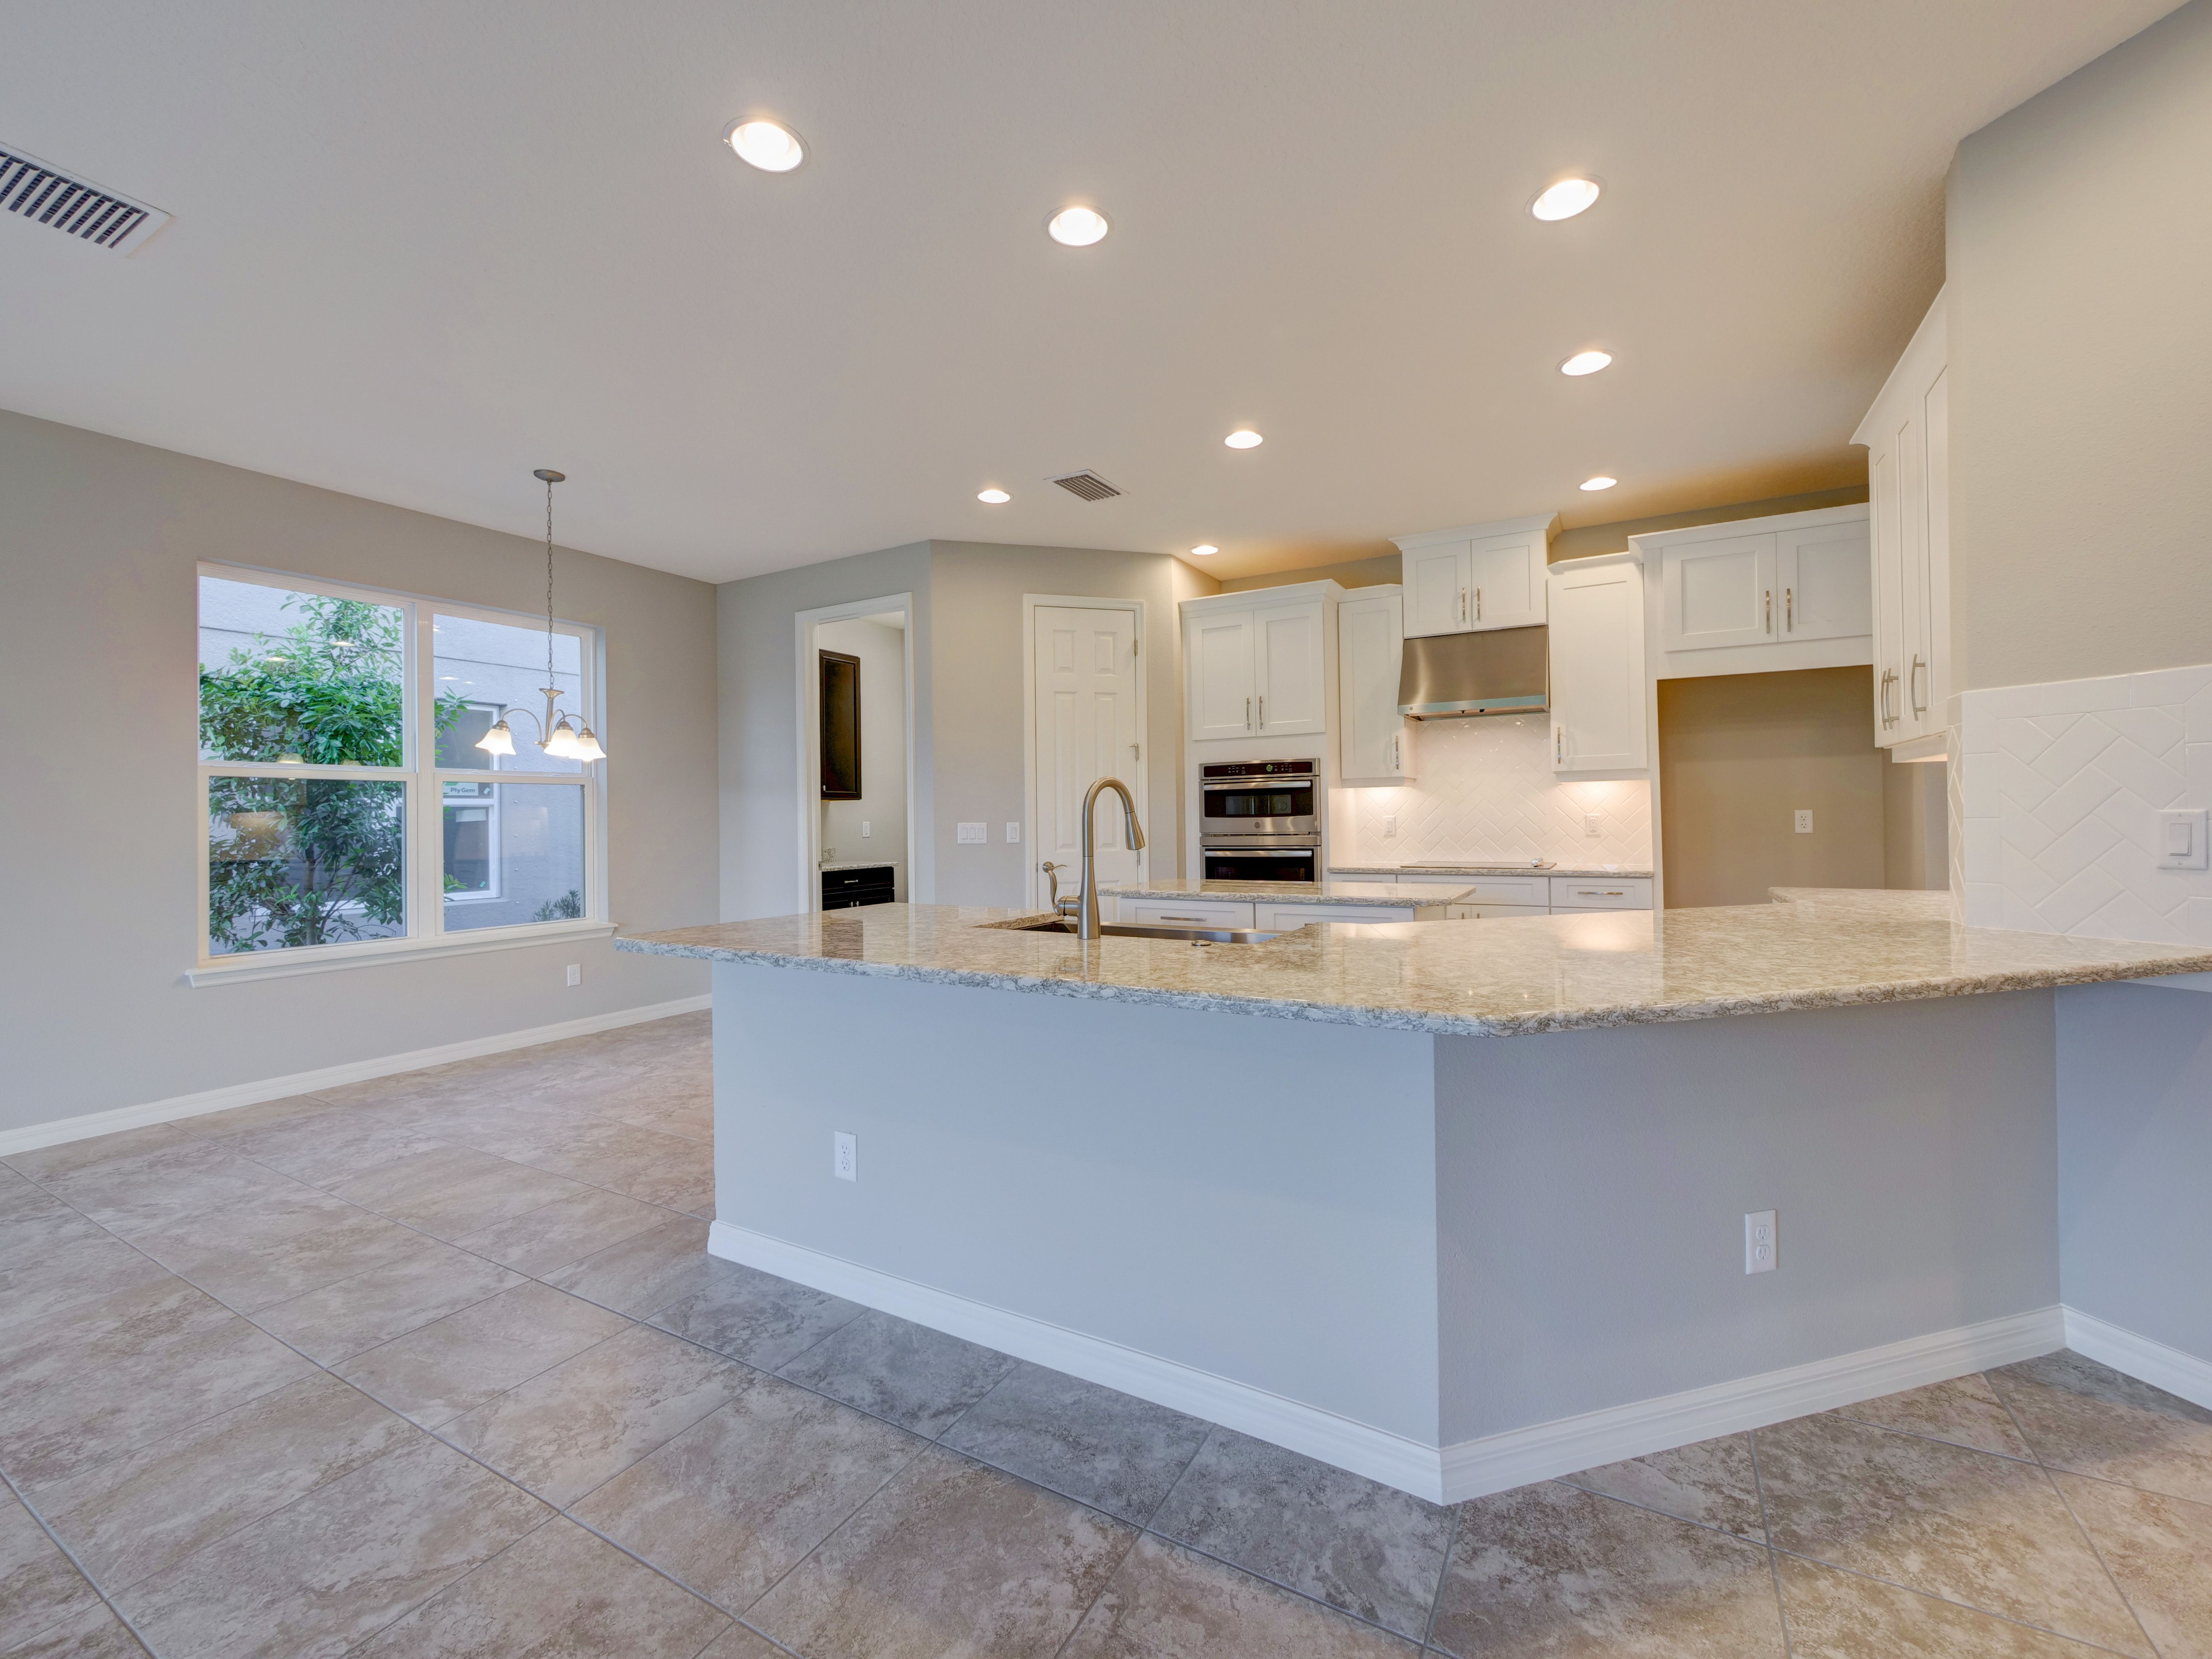 Kitchen featured in the Martinique By Taylor Morrison in Sarasota-Bradenton, FL